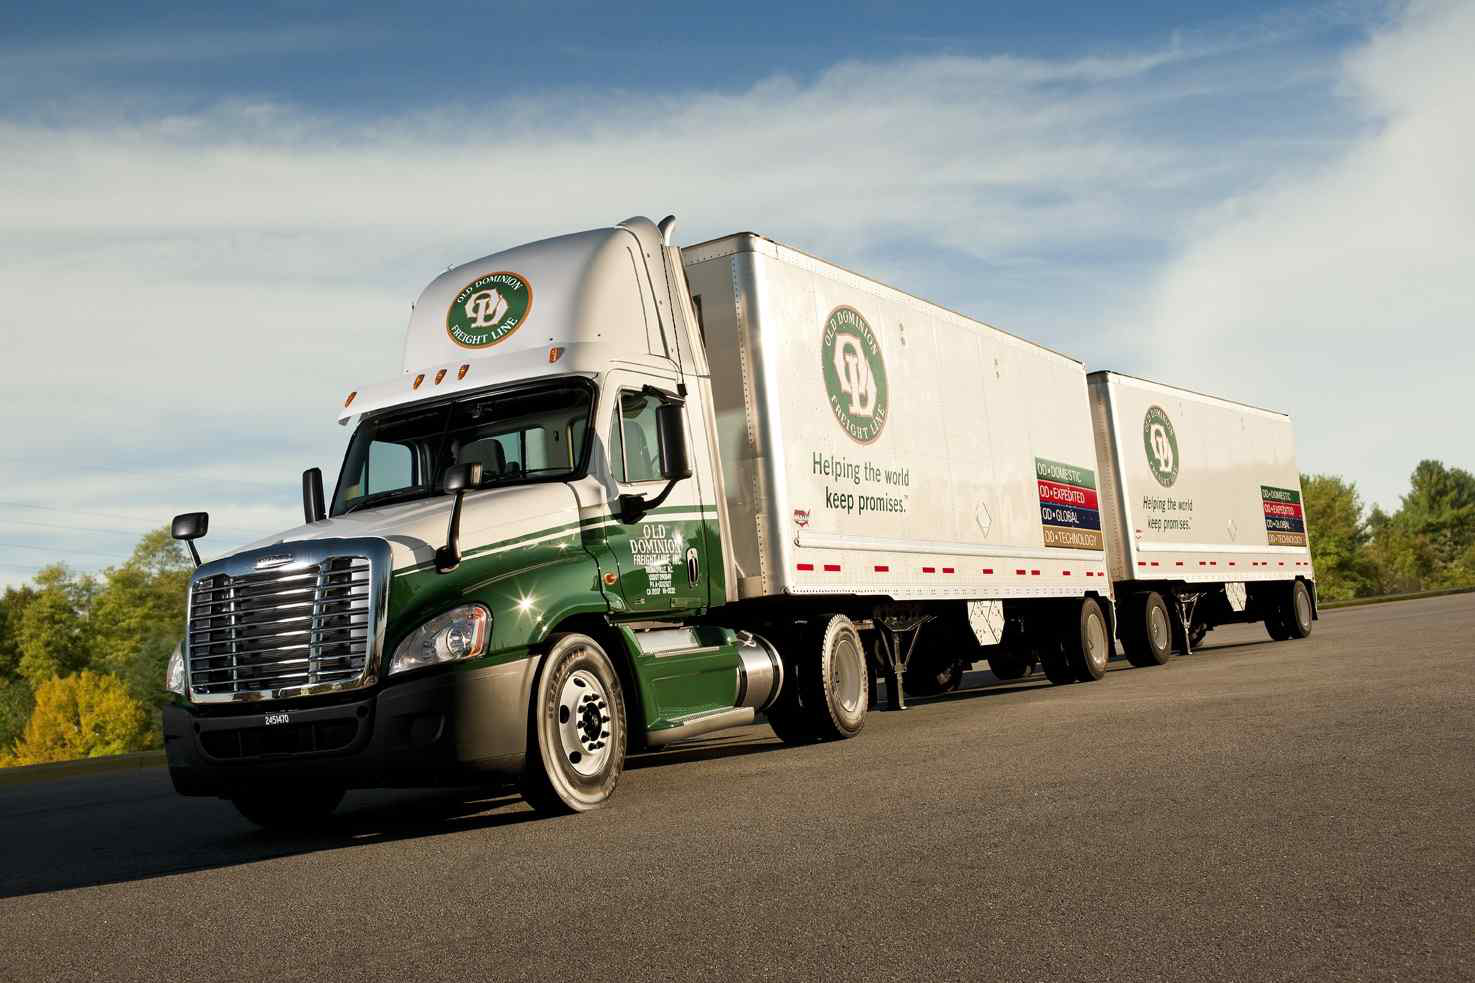 Teamsters speak out against 33-foot doubles